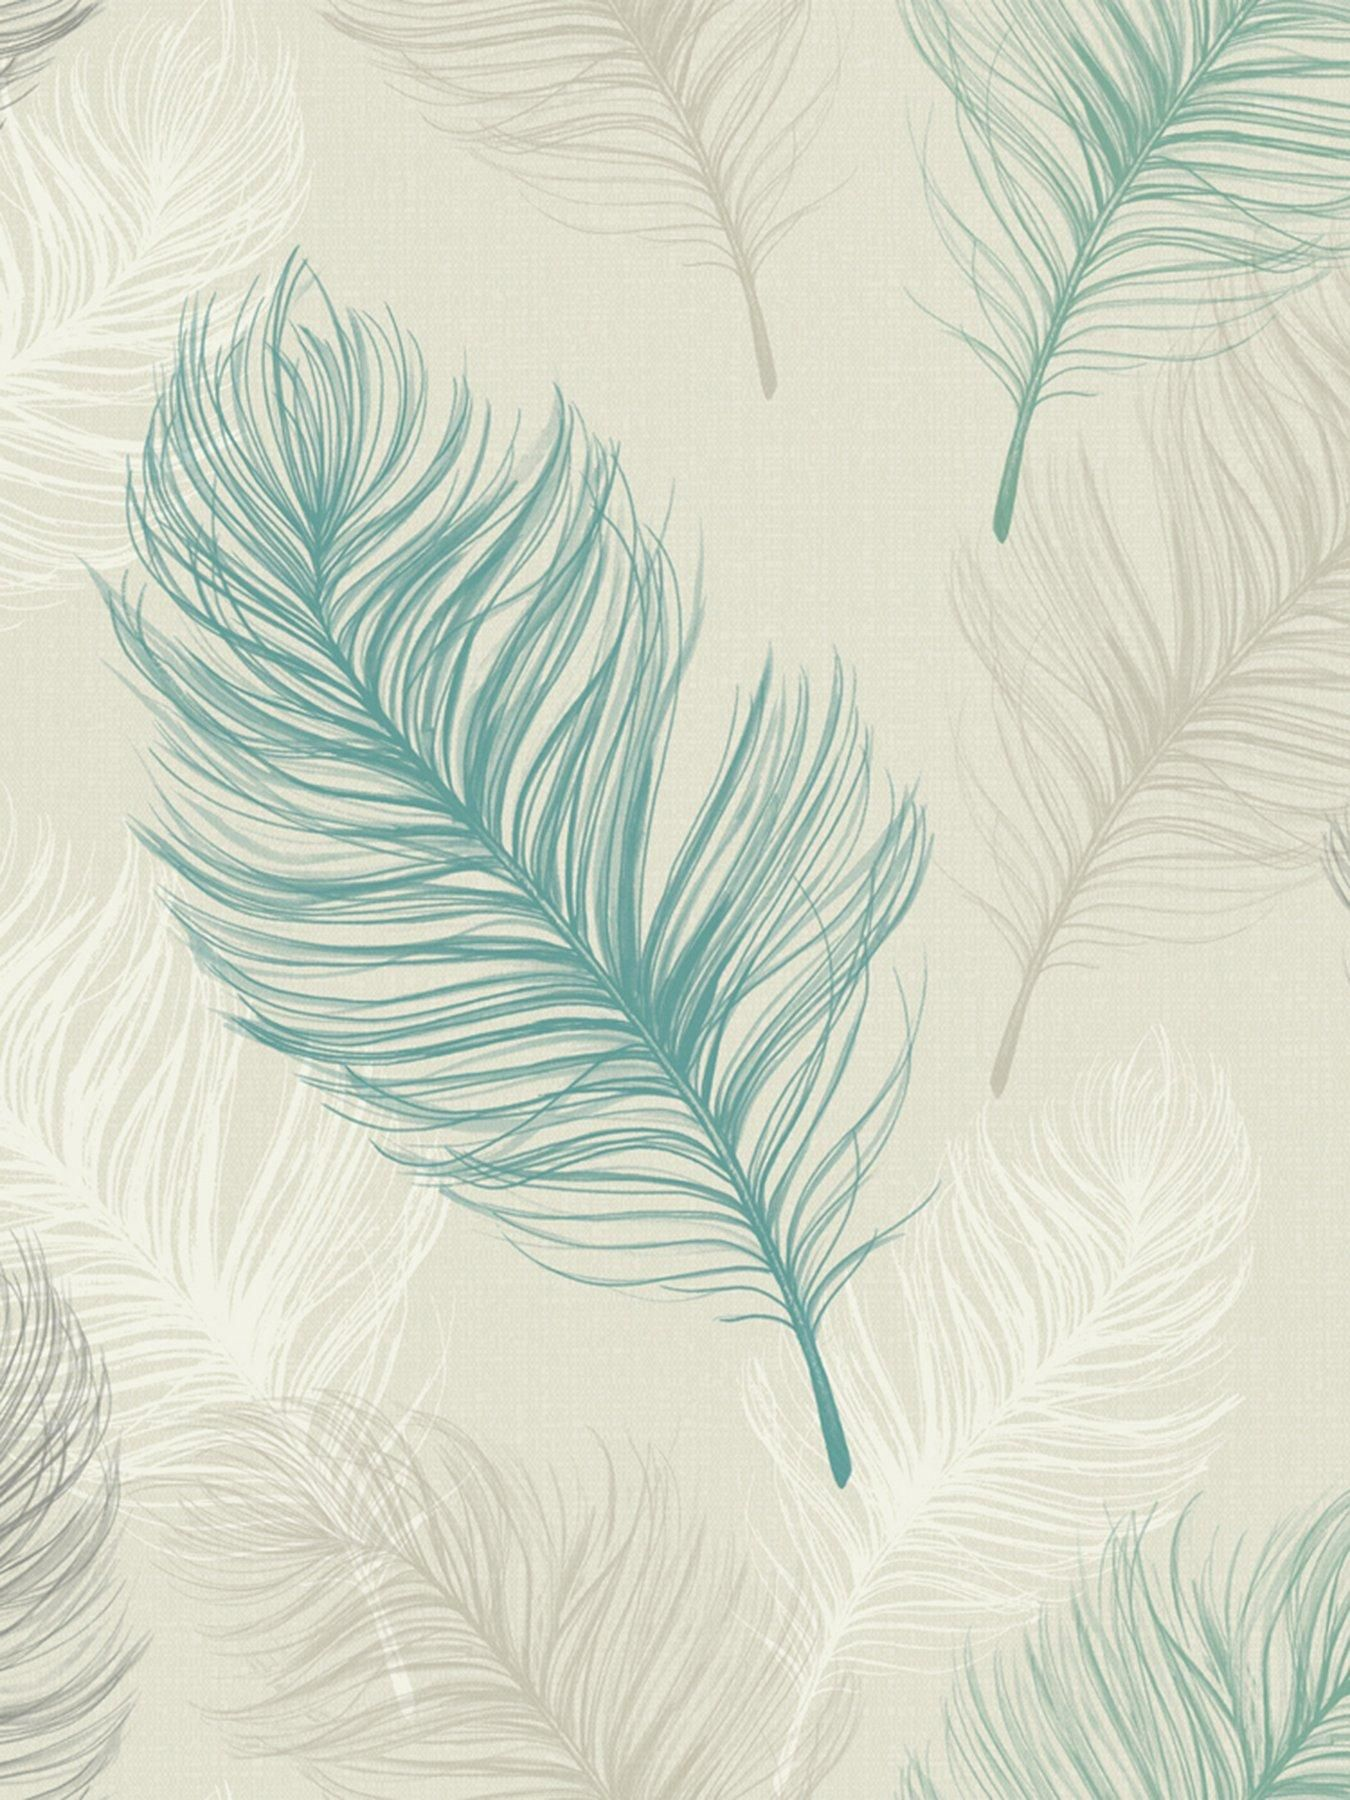 Whisper Teal Wallpaper Teal Wallpaper Pattern Wallpaper And